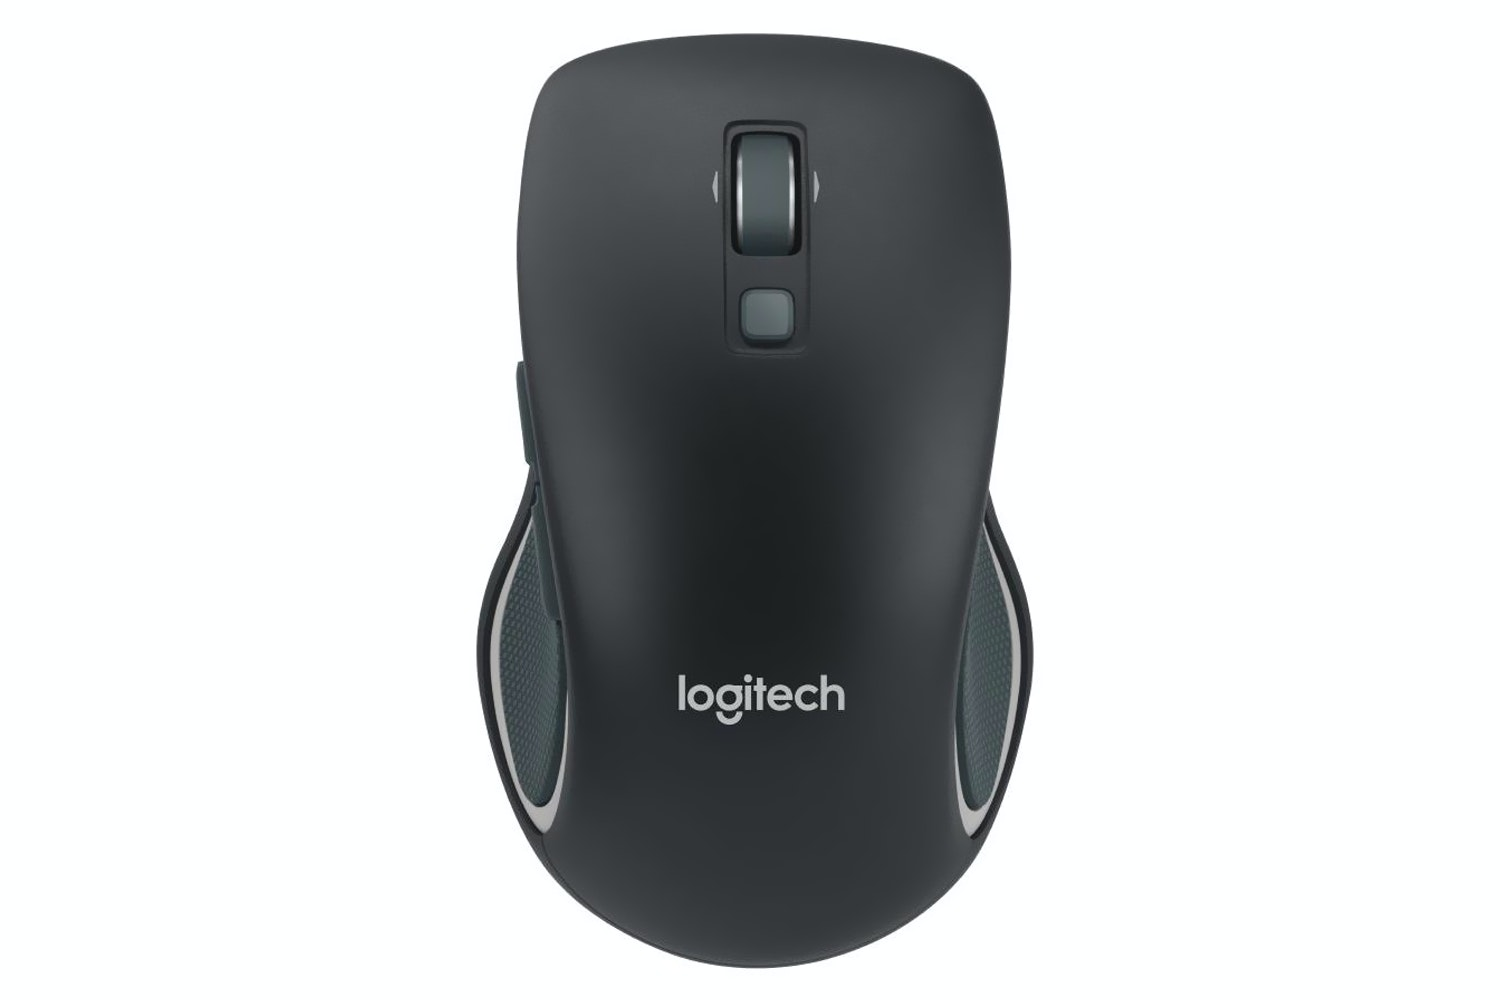 Logitech M560 Wireless Mouse | Black